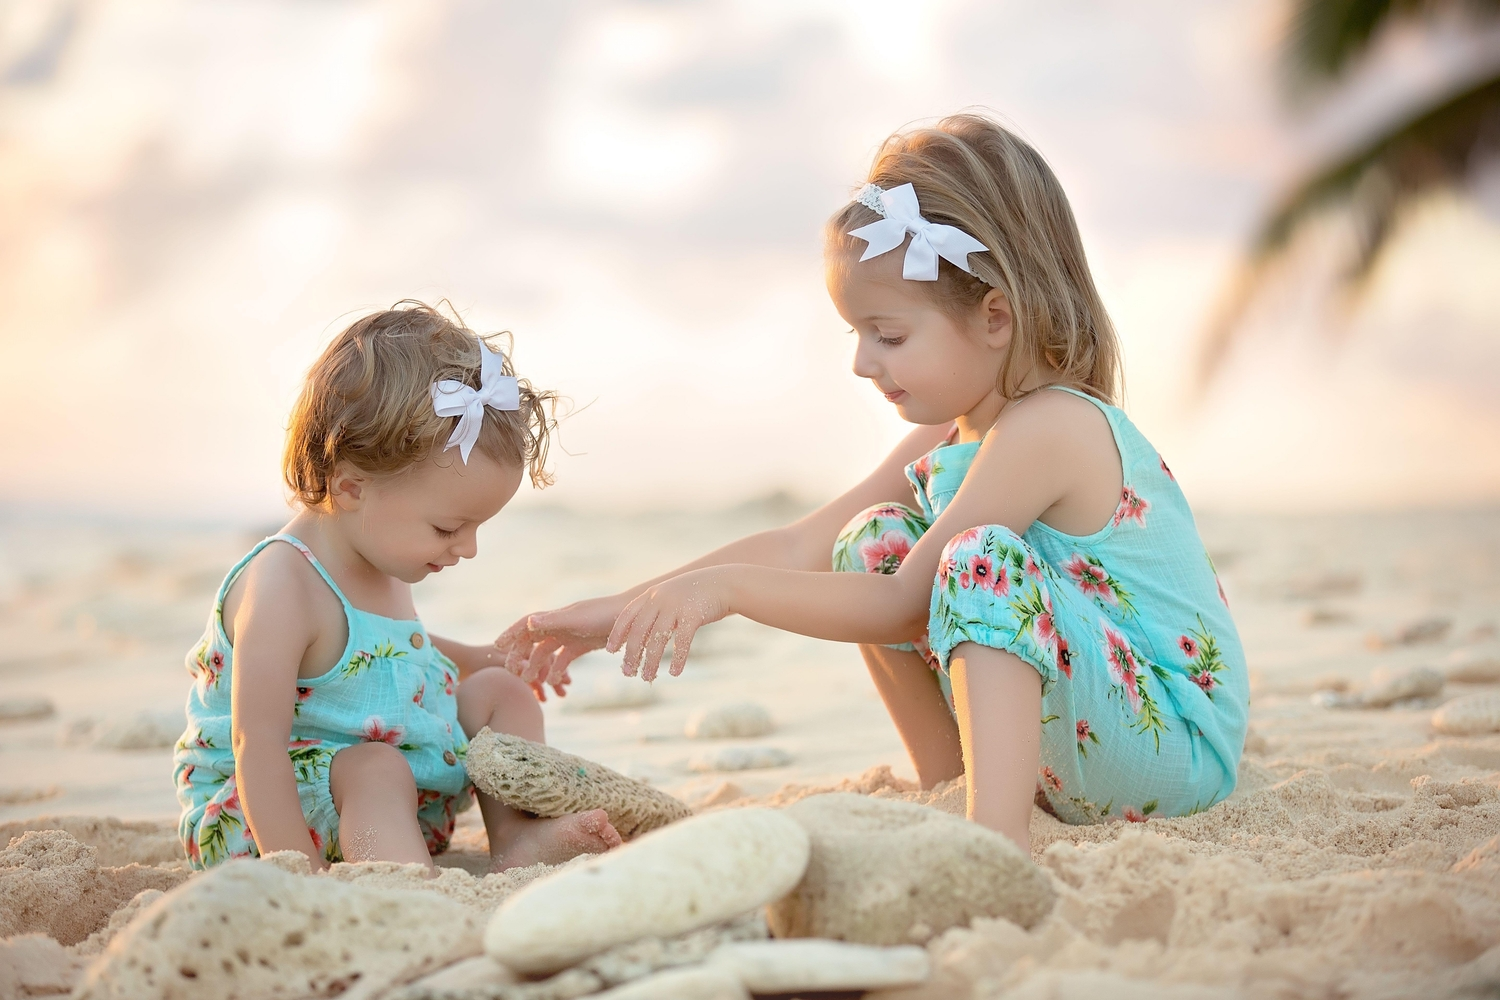 Baby and her young sister playing in the sand on the beach